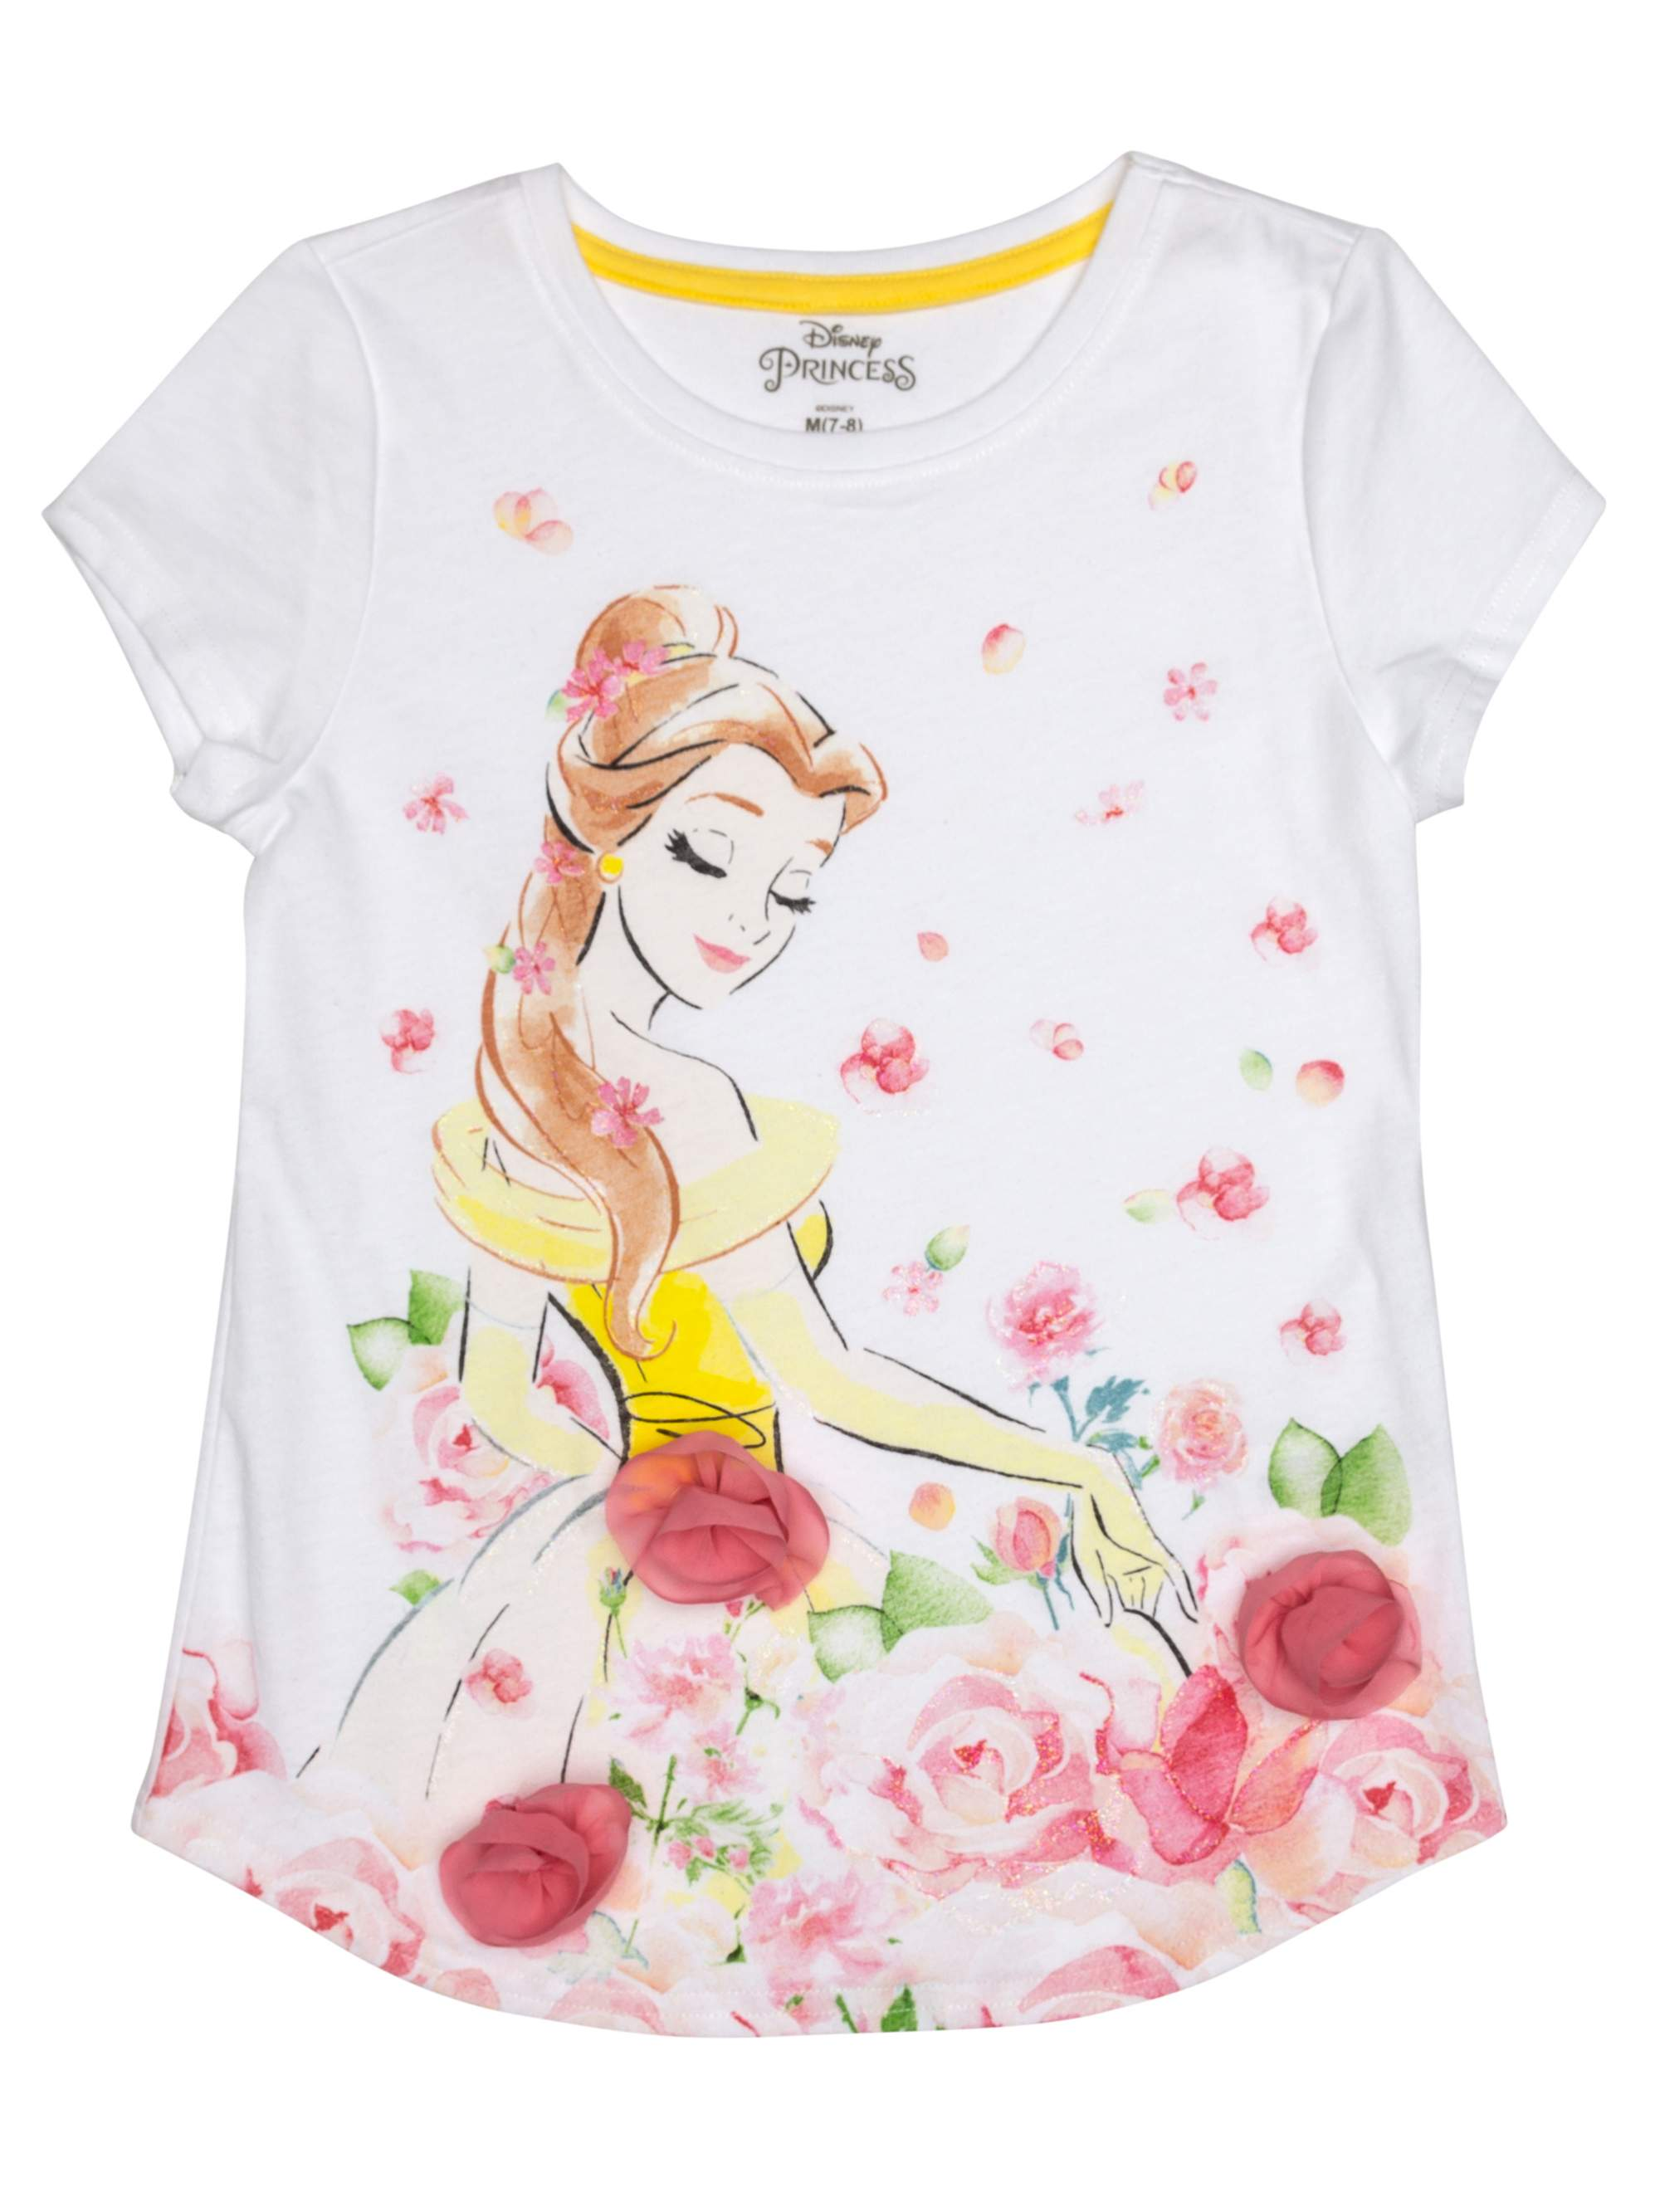 a01b7c4b216ef Disney Princess - Belle 3D Chiffon Flowers Graphic T-Shirt (Little Girls &  Big Girls) - Walmart.com